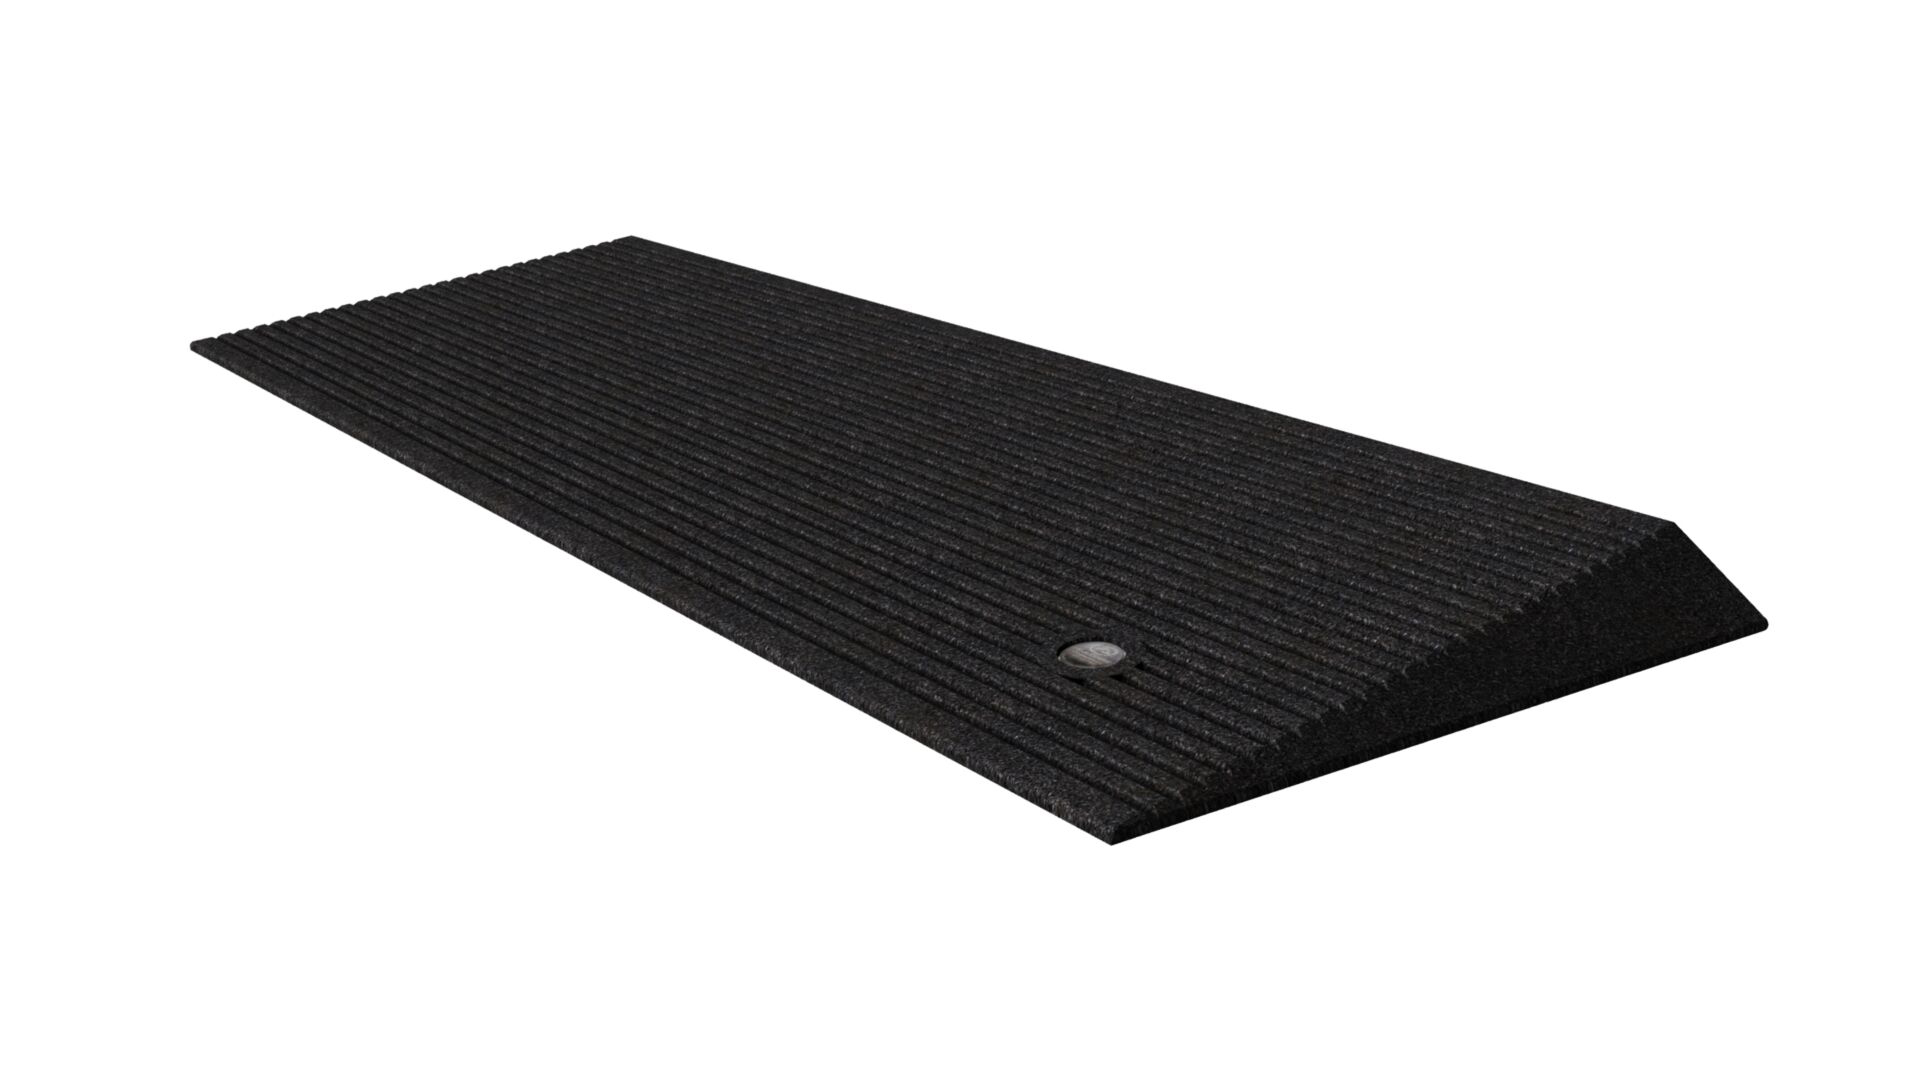 TRANSITIONS® Angled Entry Mat - Picture 05